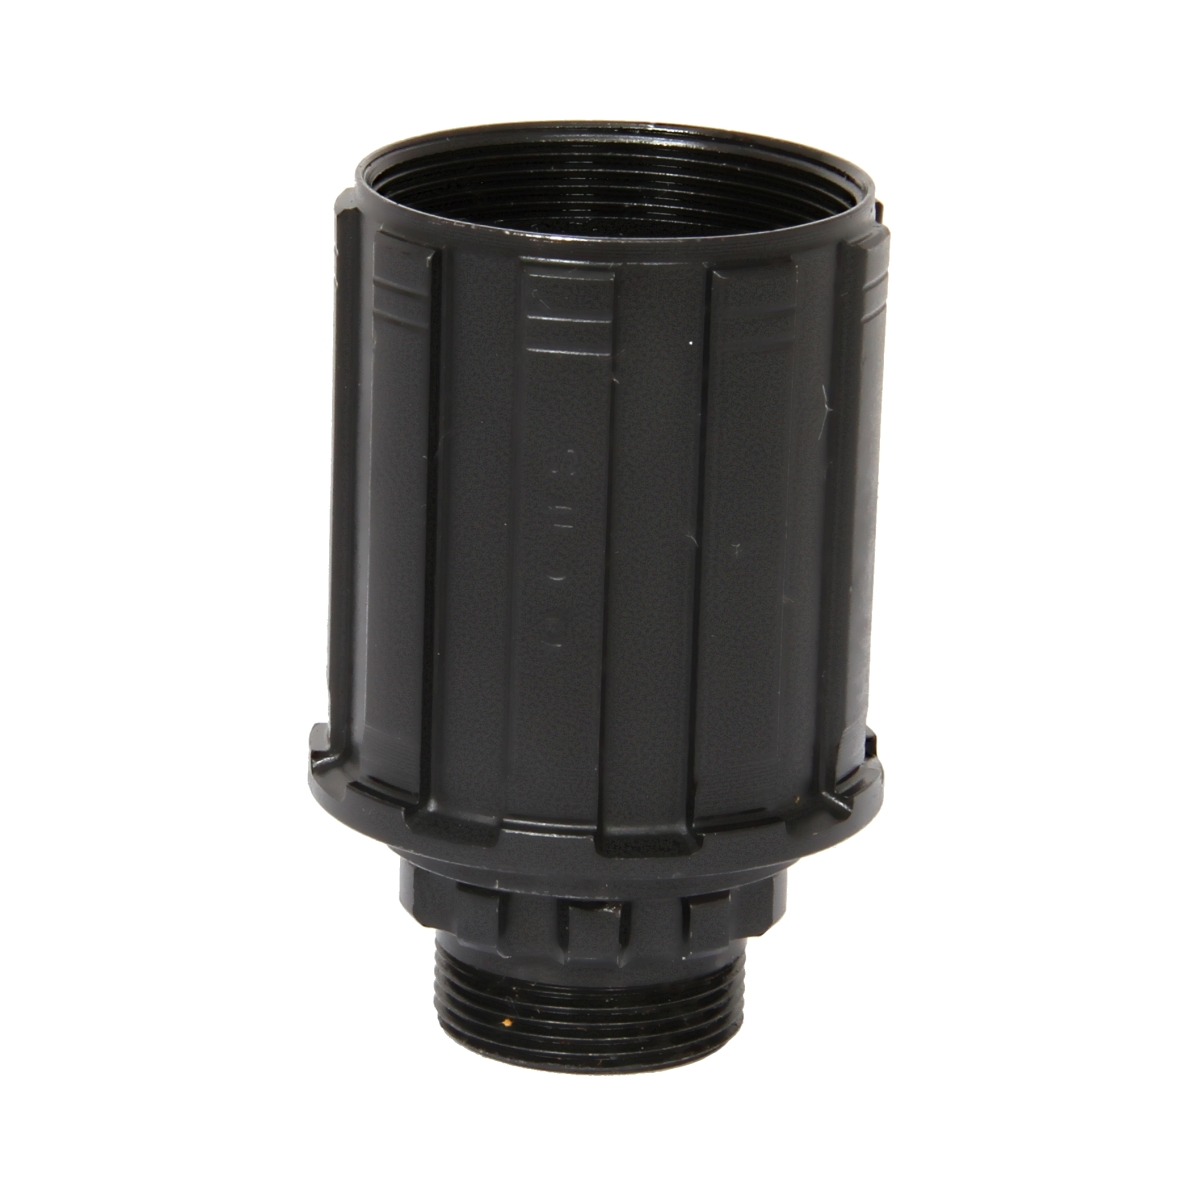 11 speed freehub body with cartridge bearing for Giant & Cannondale hubs